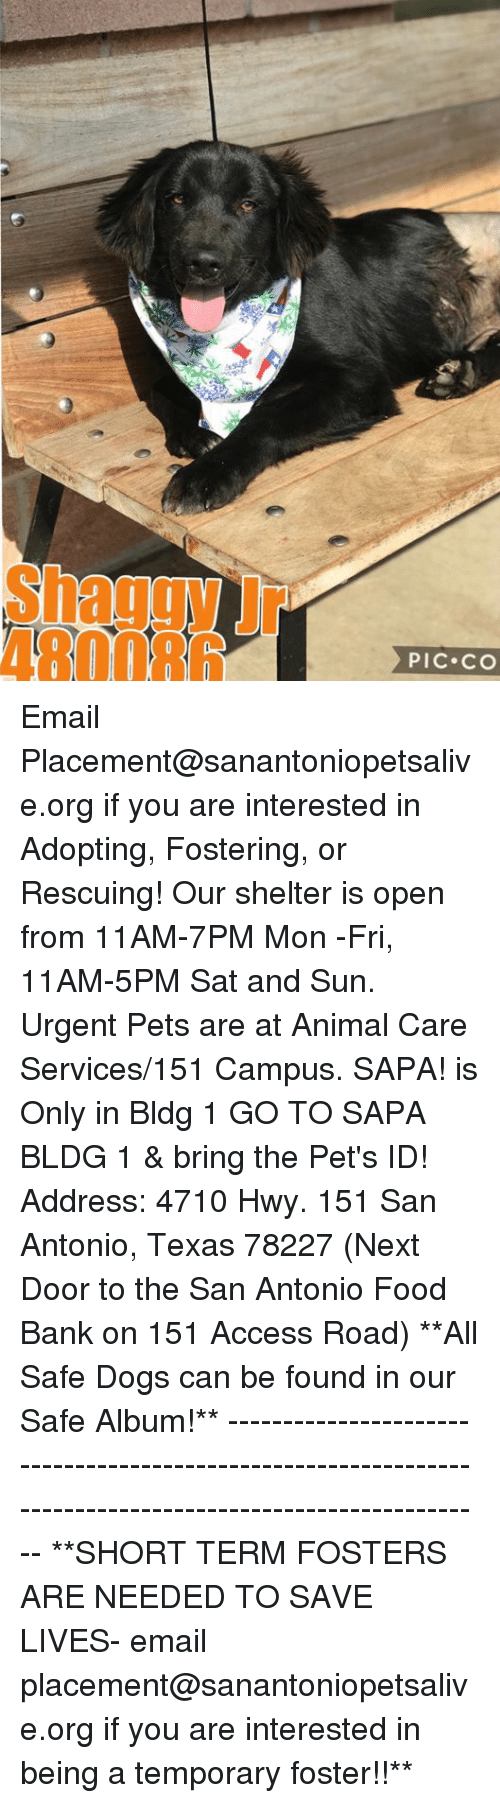 Dogs, Food, and Memes: Shaggy Jr  480086  PIC CO Email Placement@sanantoniopetsalive.org if you are interested in Adopting, Fostering, or Rescuing!  Our shelter is open from 11AM-7PM Mon -Fri, 11AM-5PM Sat and Sun.  Urgent Pets are at Animal Care Services/151 Campus. SAPA! is Only in Bldg 1 GO TO SAPA BLDG 1 & bring the Pet's ID! Address: 4710 Hwy. 151 San Antonio, Texas 78227 (Next Door to the San Antonio Food Bank on 151 Access Road)  **All Safe Dogs can be found in our Safe Album!** ---------------------------------------------------------------------------------------------------------- **SHORT TERM FOSTERS ARE NEEDED TO SAVE LIVES- email placement@sanantoniopetsalive.org if you are interested in being a temporary foster!!**